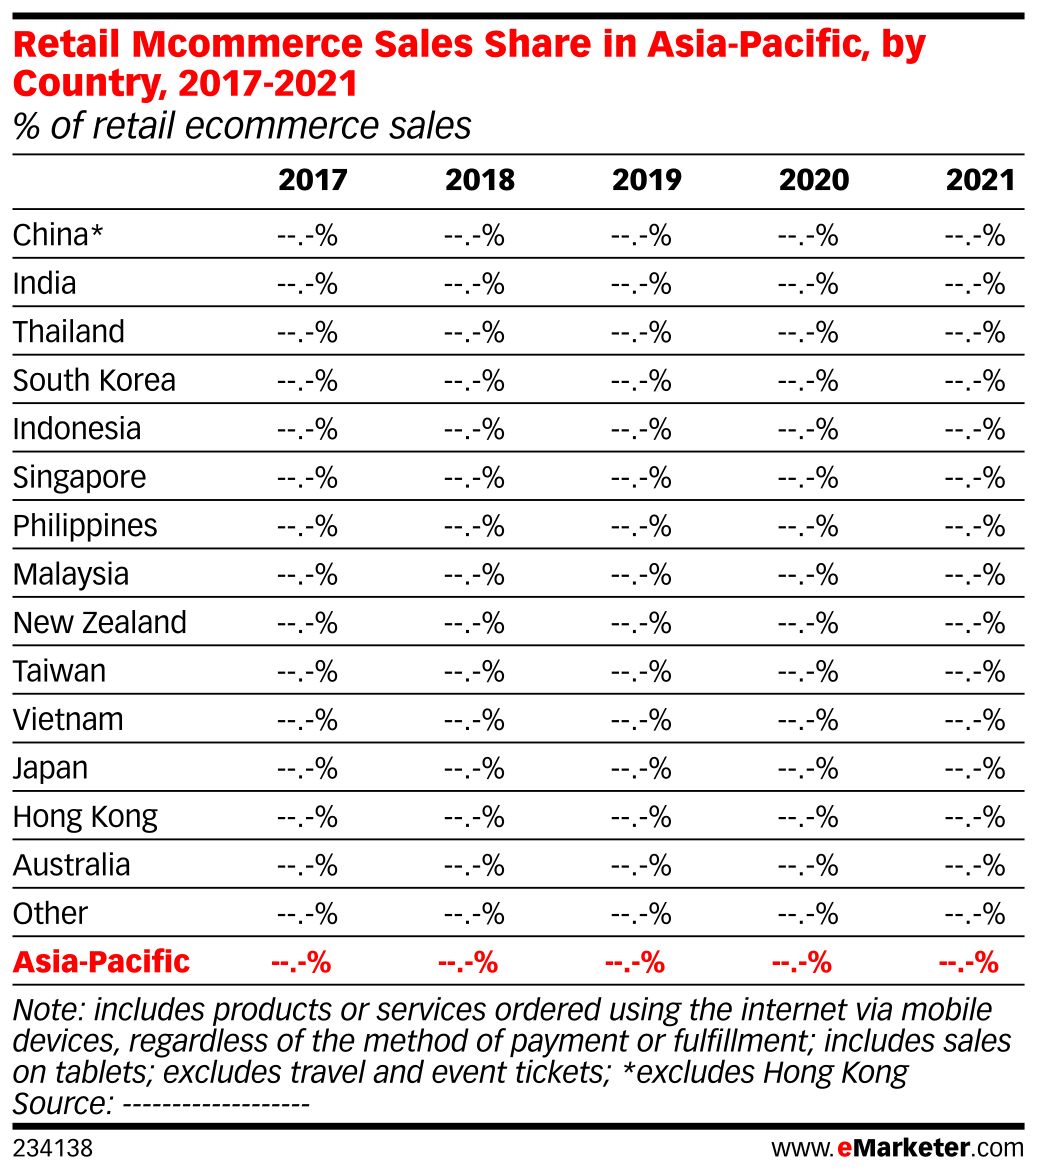 Retail Mcommerce Sales Share in Asia-Pacific, by Country, 2017-2021 (% of retail ecommerce sales)